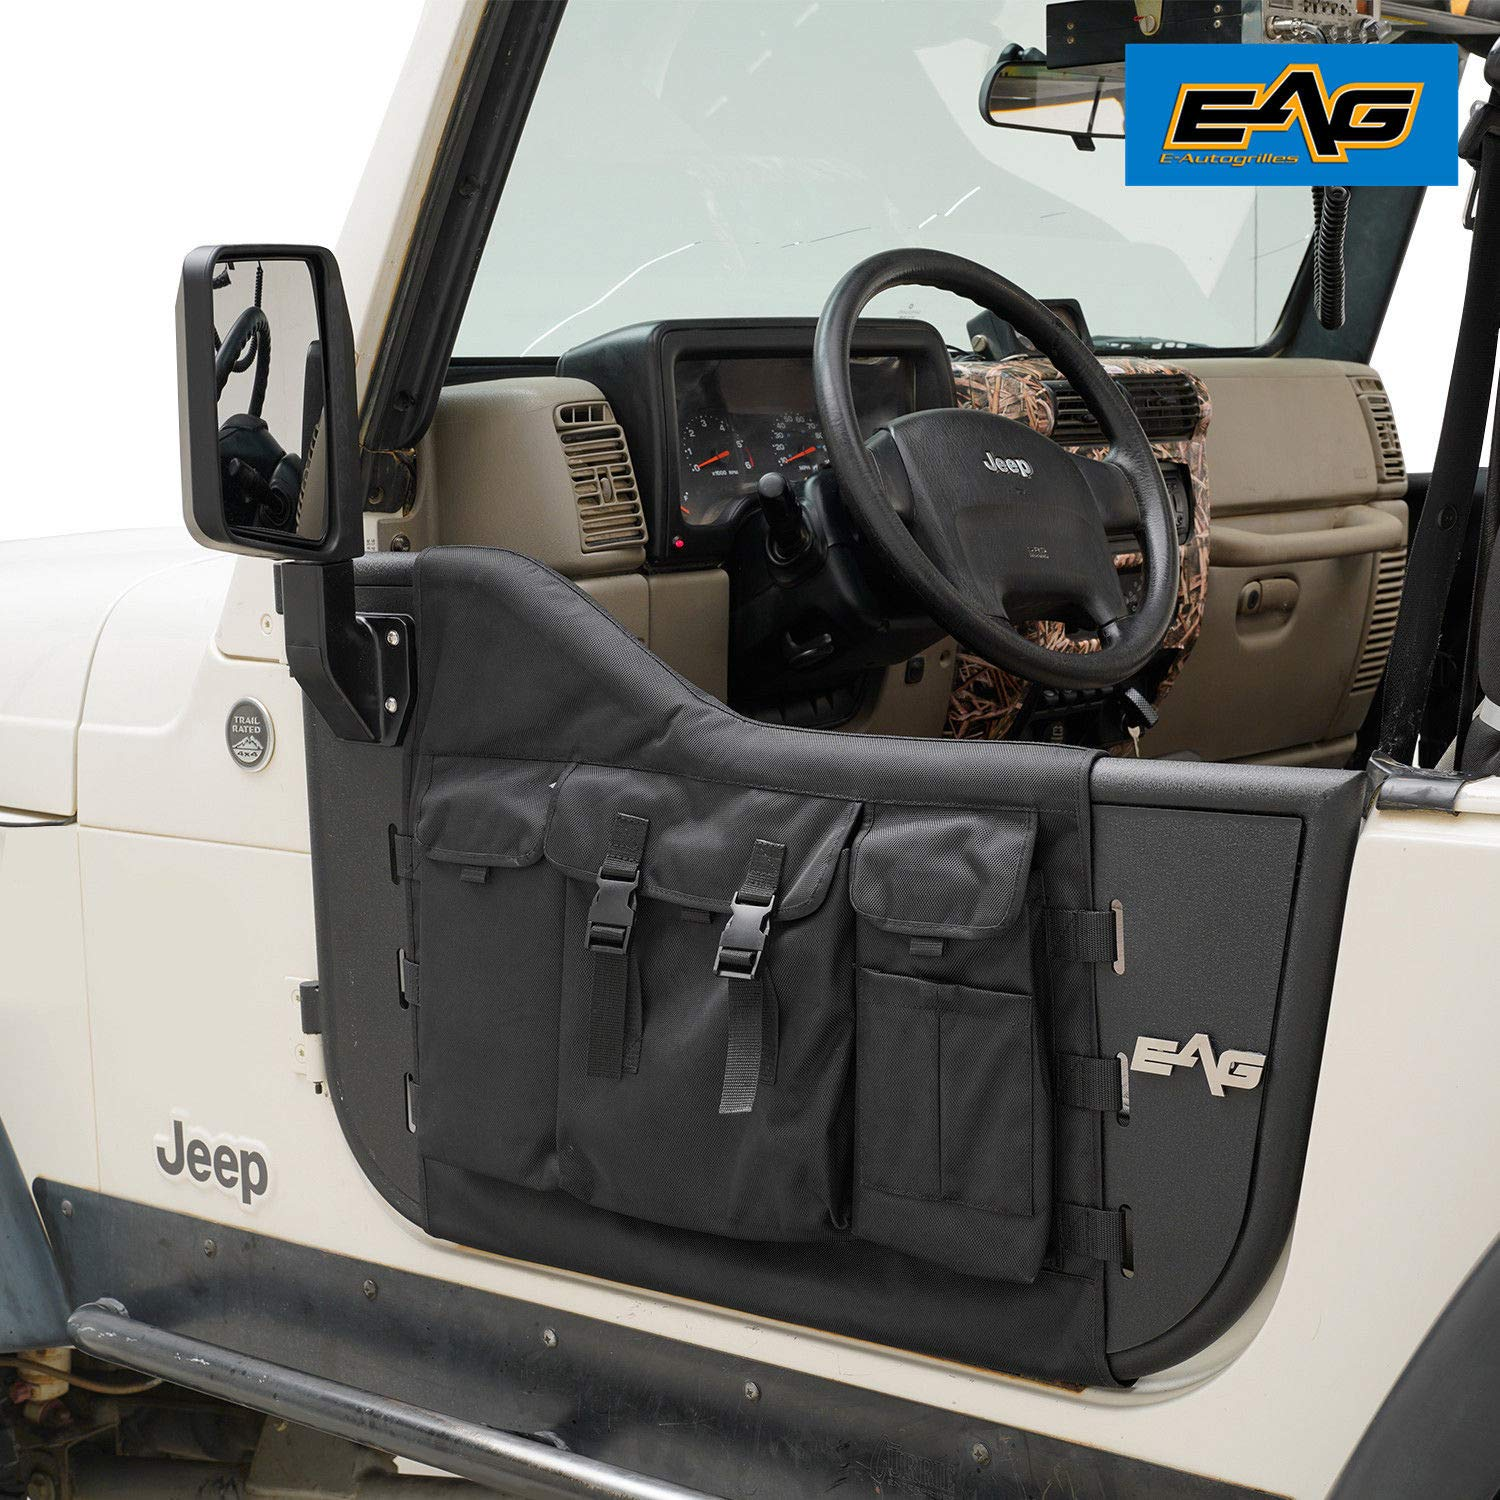 EAG Pocket Steel Tubular Door with Side View Mirror for 97-06 Jeep Wrangler TJ